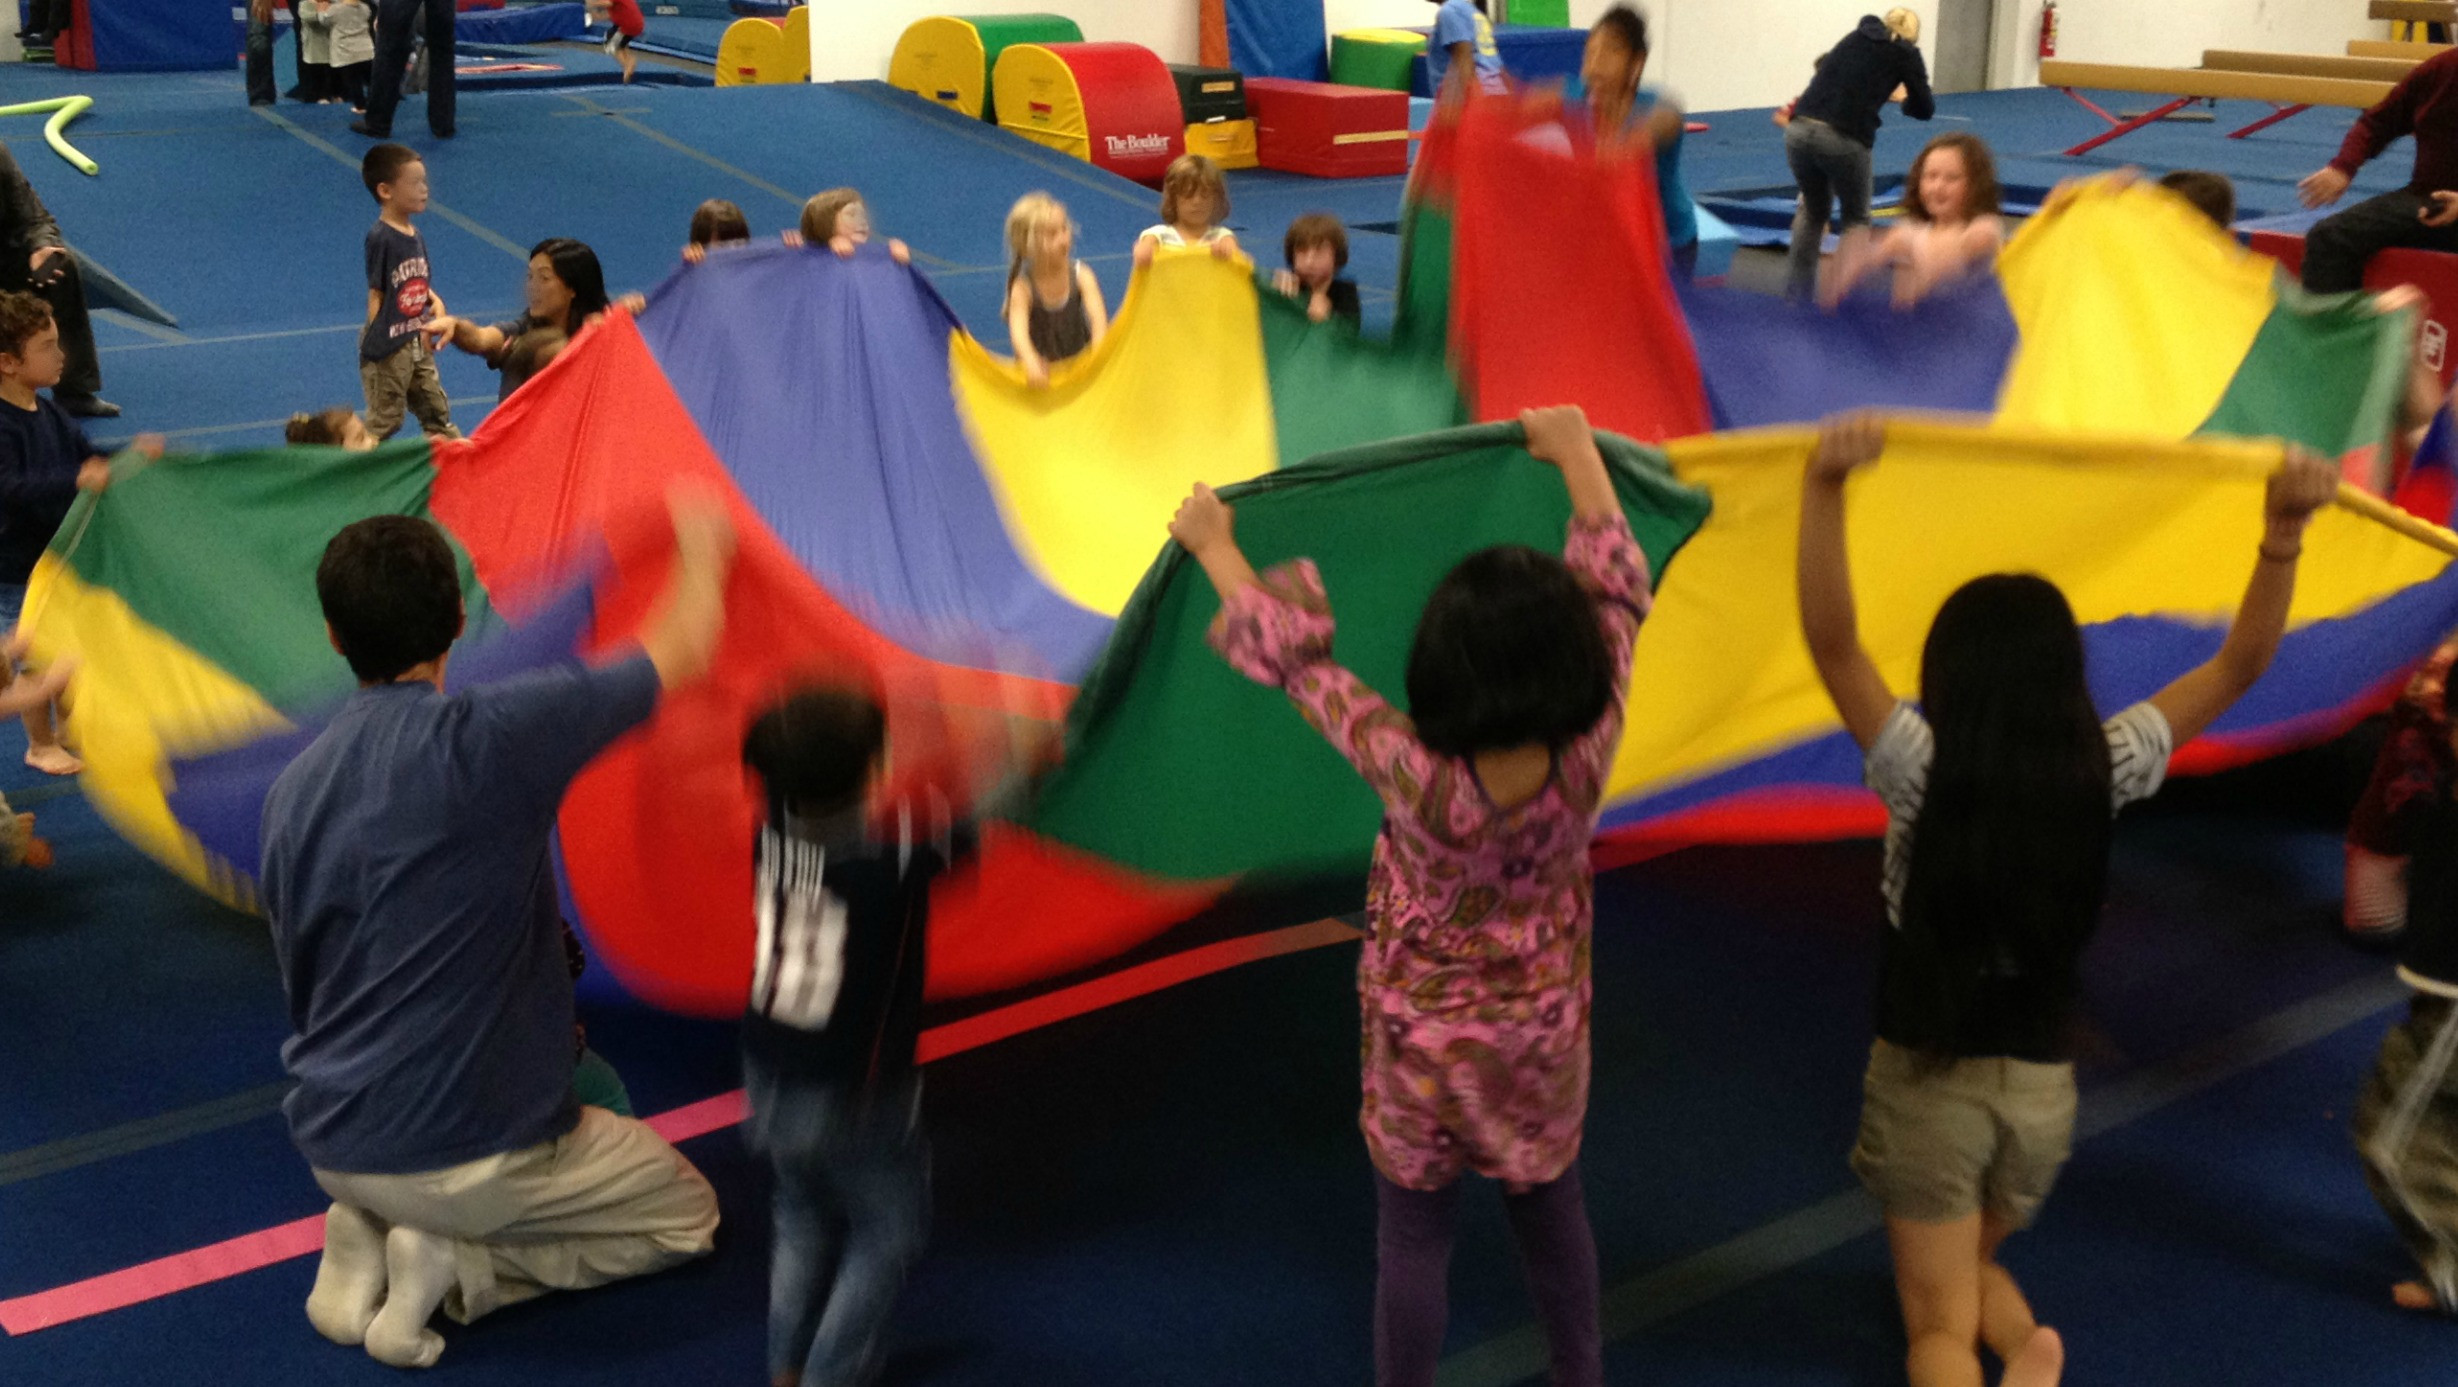 Best ideas about Place For A Birthday Party . Save or Pin Kids Birthday Party Places in MA Energy Fitness Now.